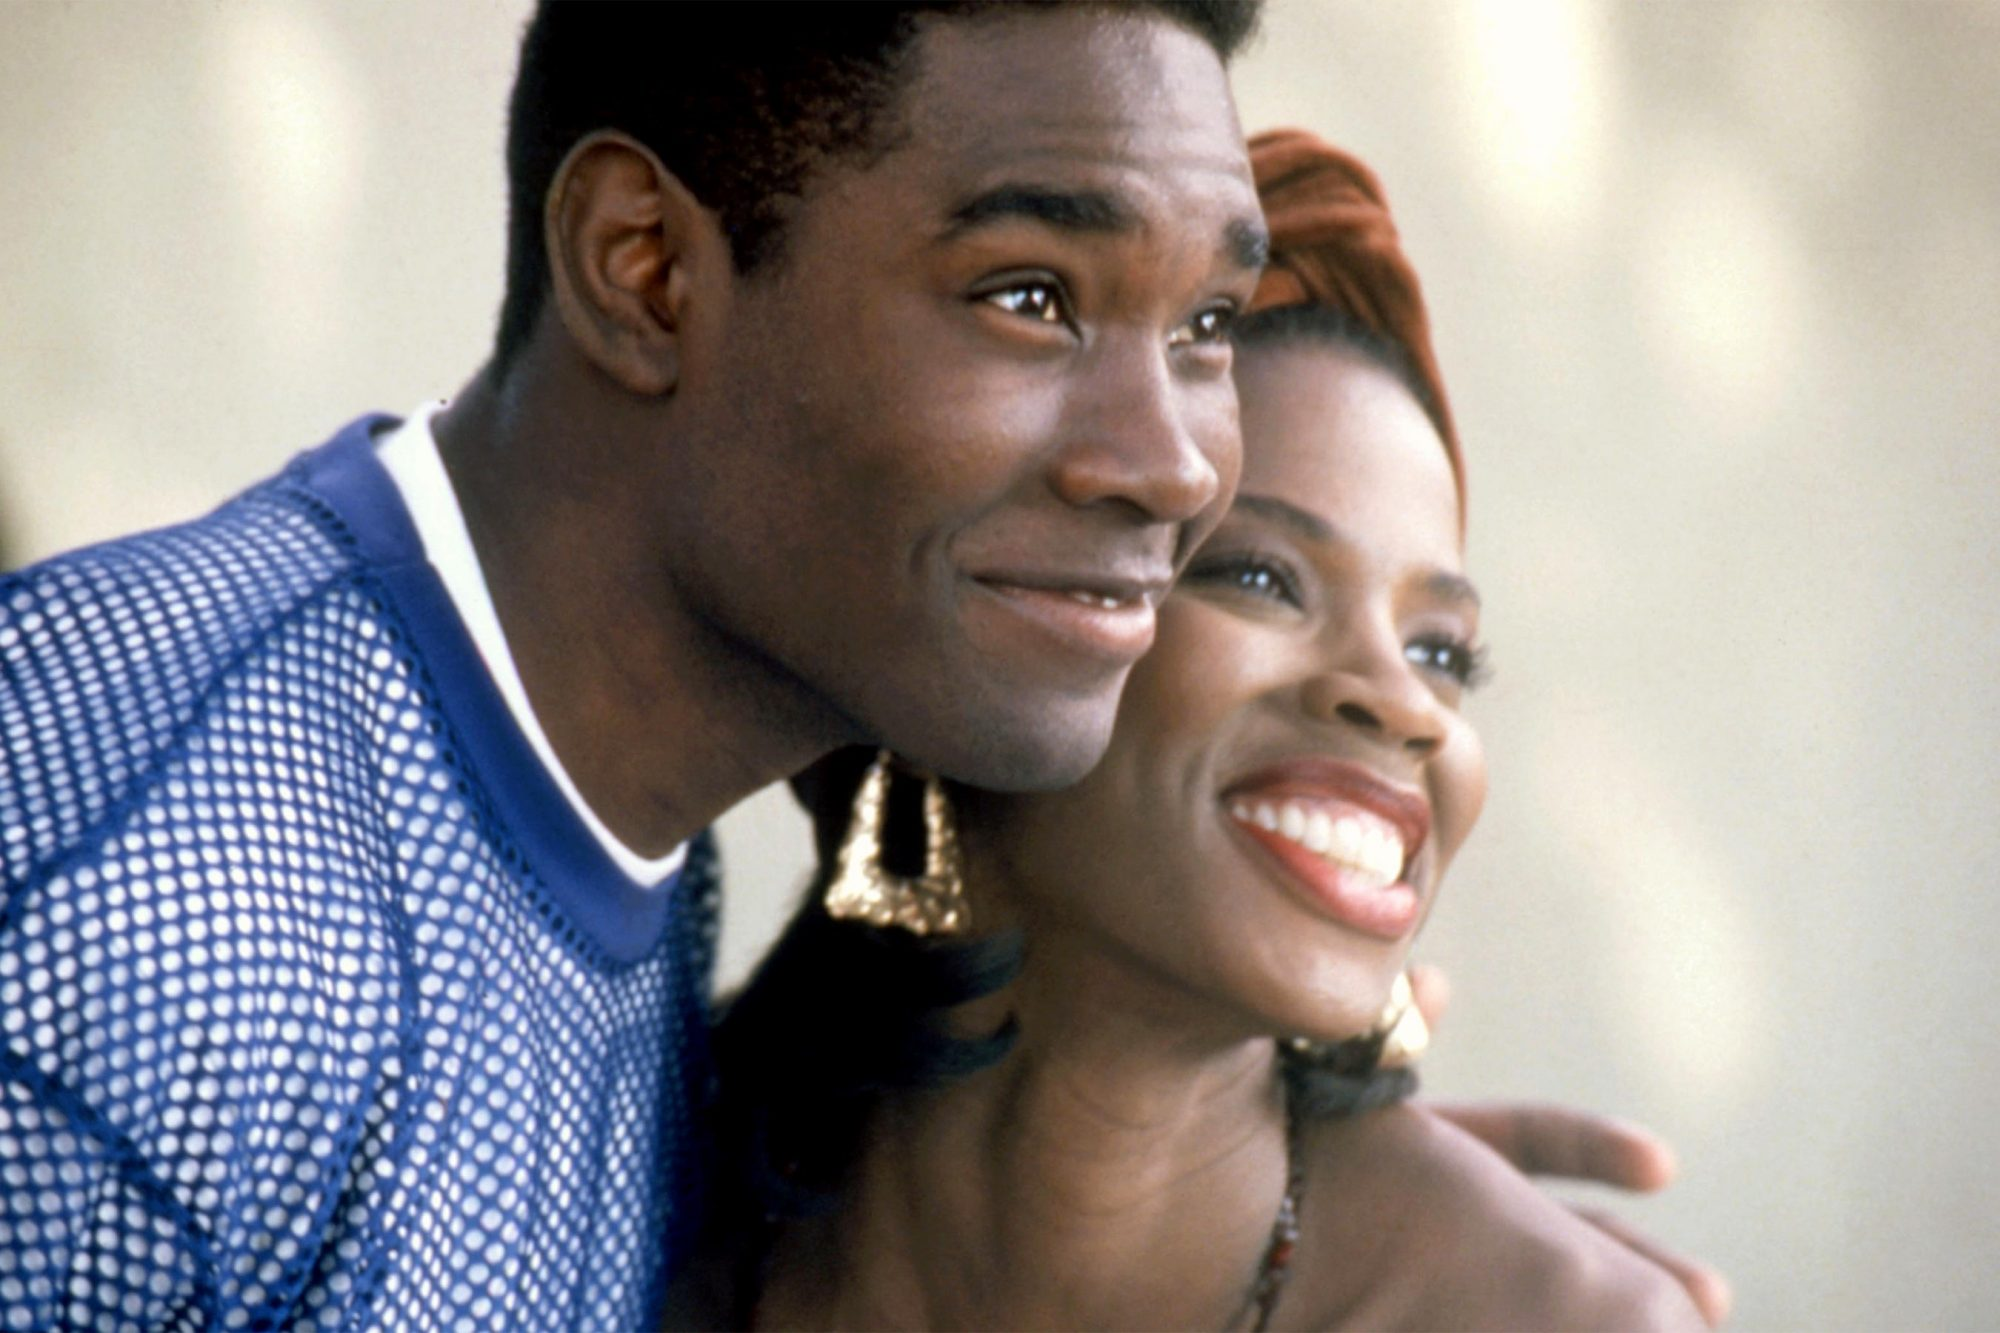 BOYZ N THE HOOD, Morris Chestnut, Tyra Ferrell, 1991. (c)Columbia Pictures/courtesy Everett Collection